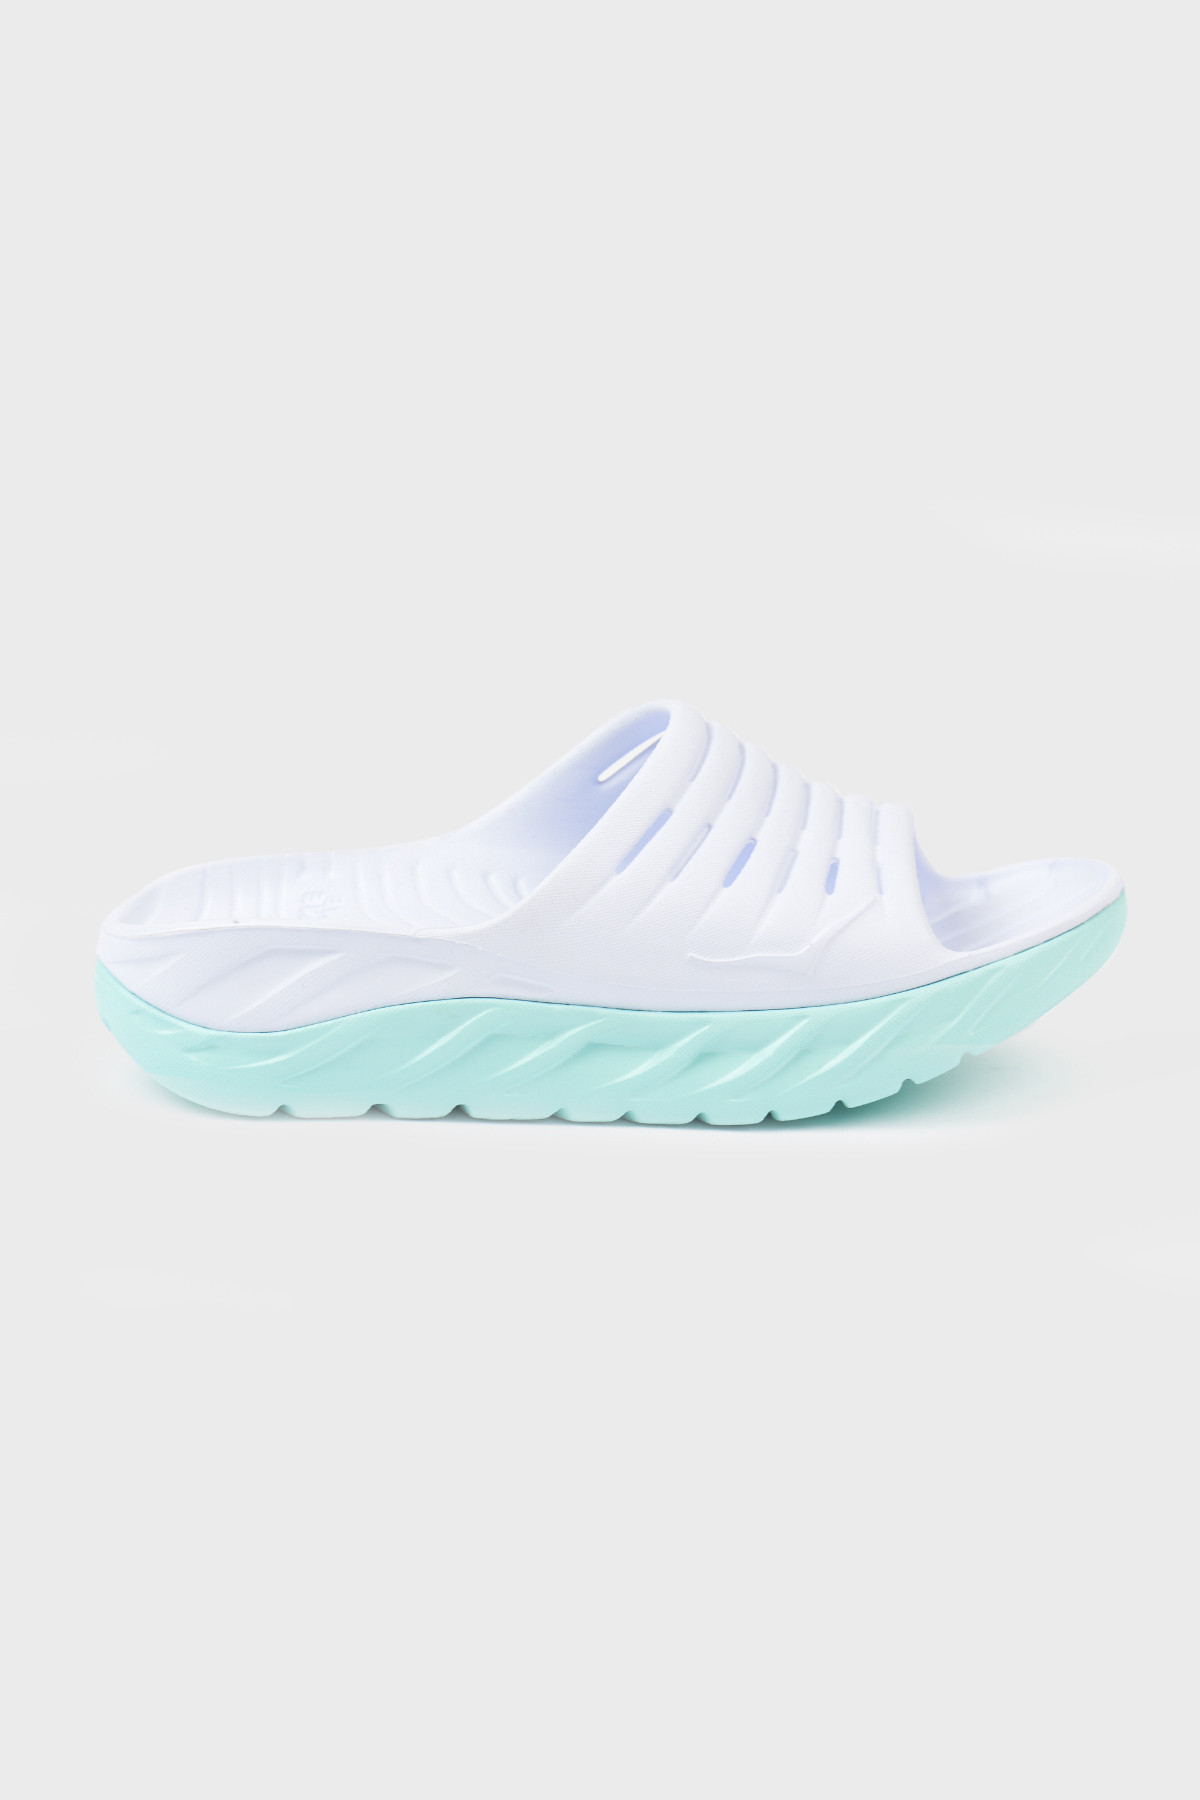 Hoka one one - Ora recovery Slide 2 - White Blue tint